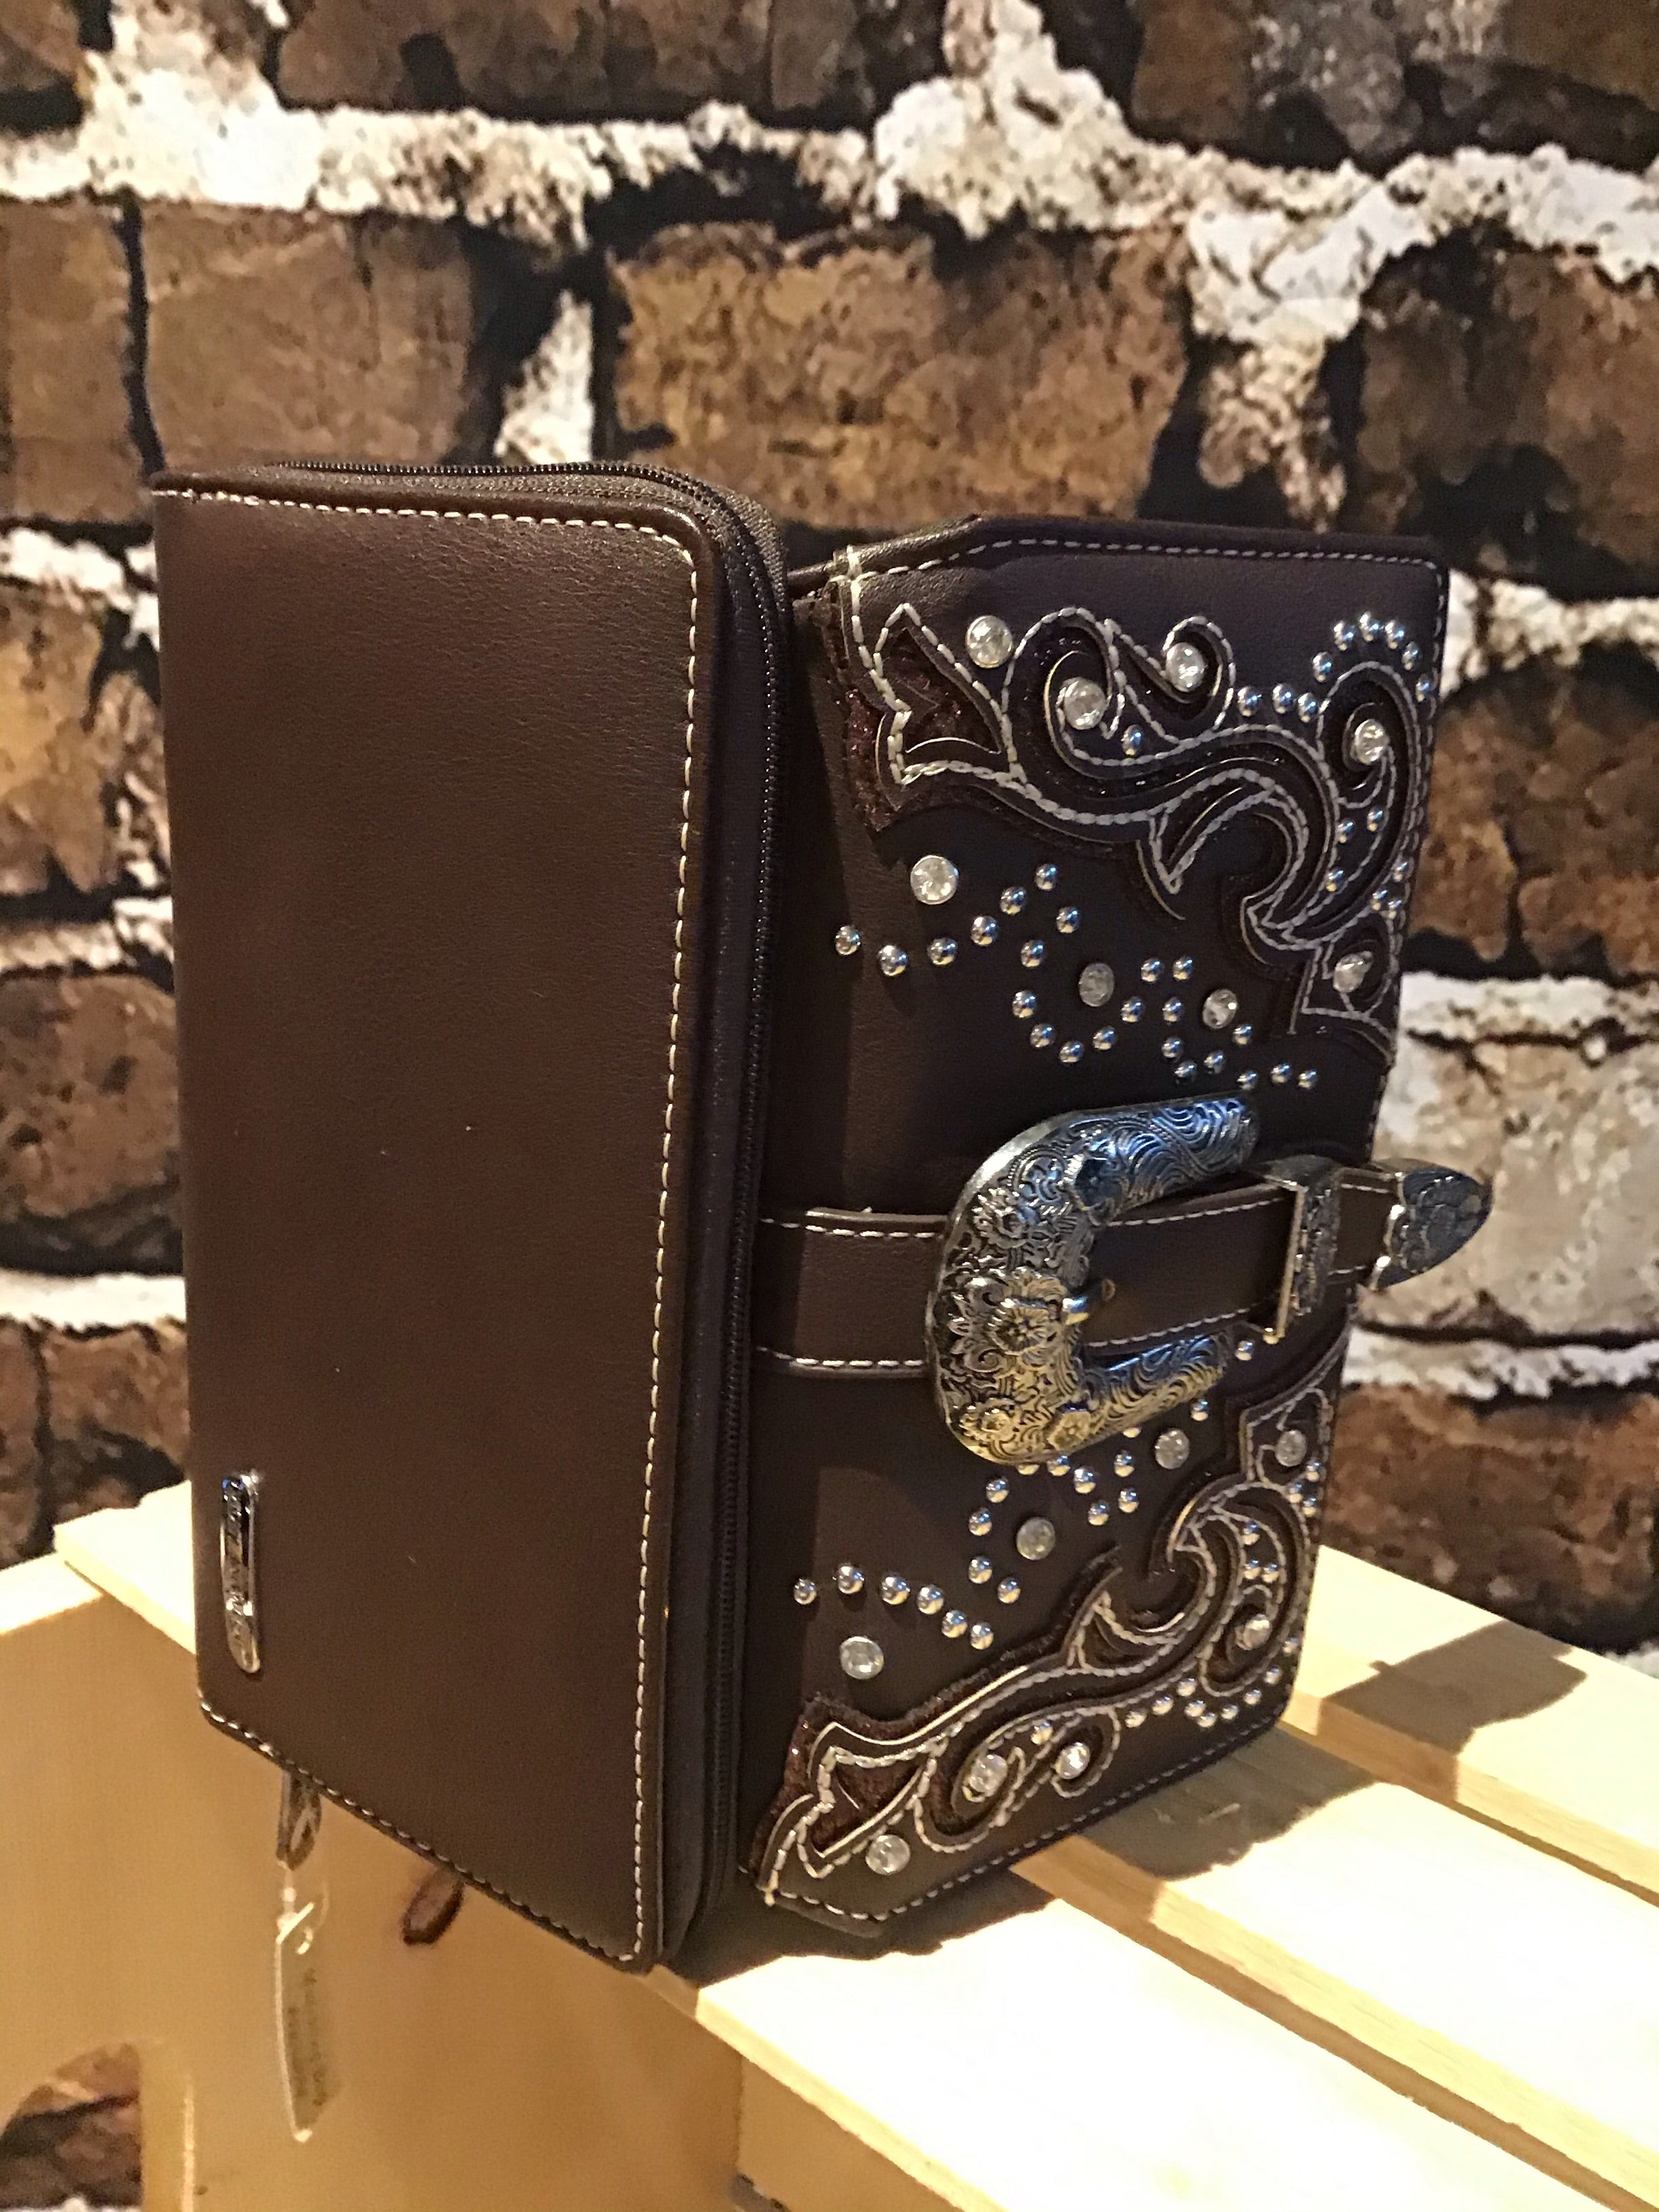 Chocolate brown Montana West Wallet Accented Secretary Style Organized Wallet